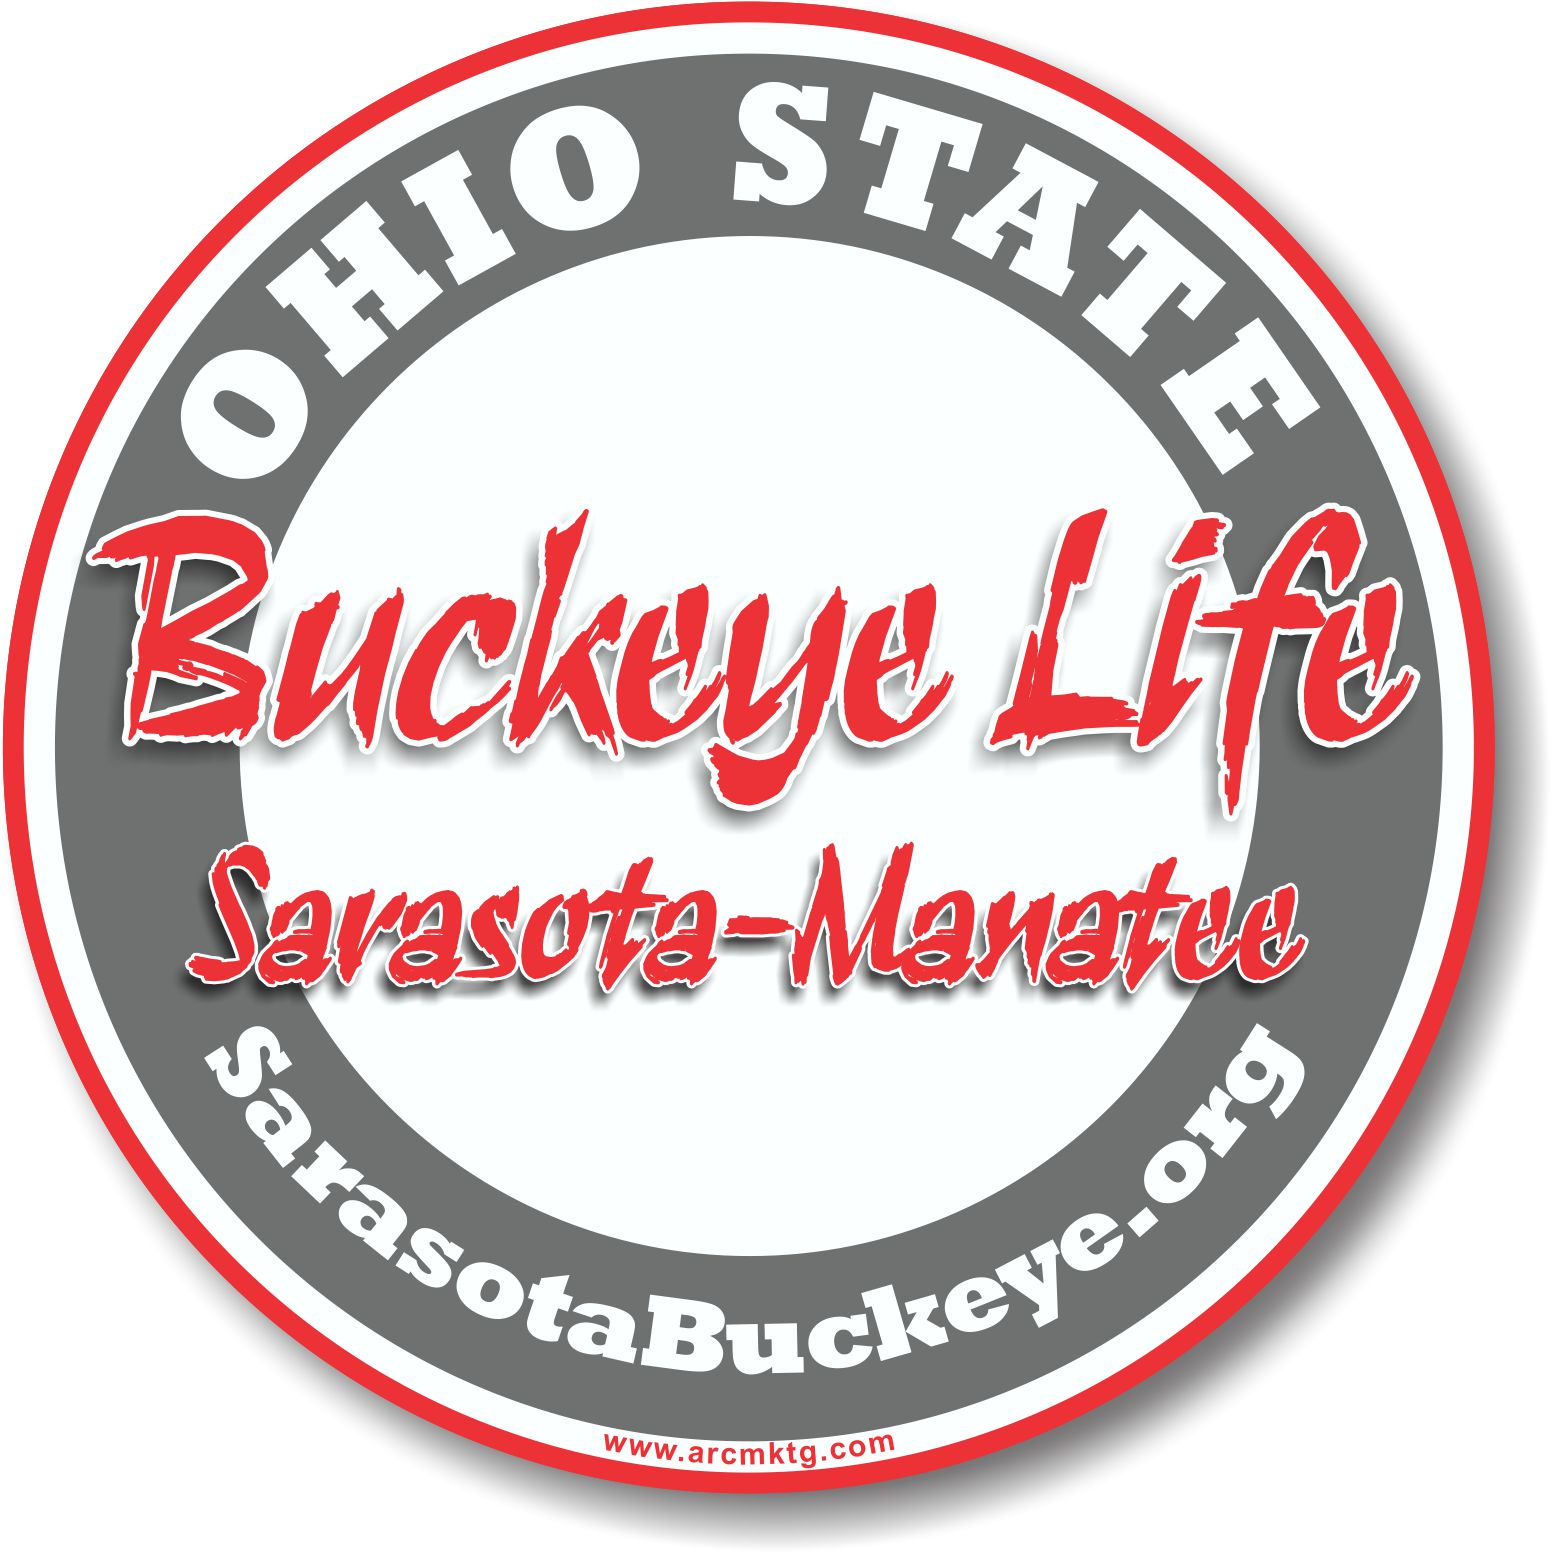 Ohio State Alumni car magnet